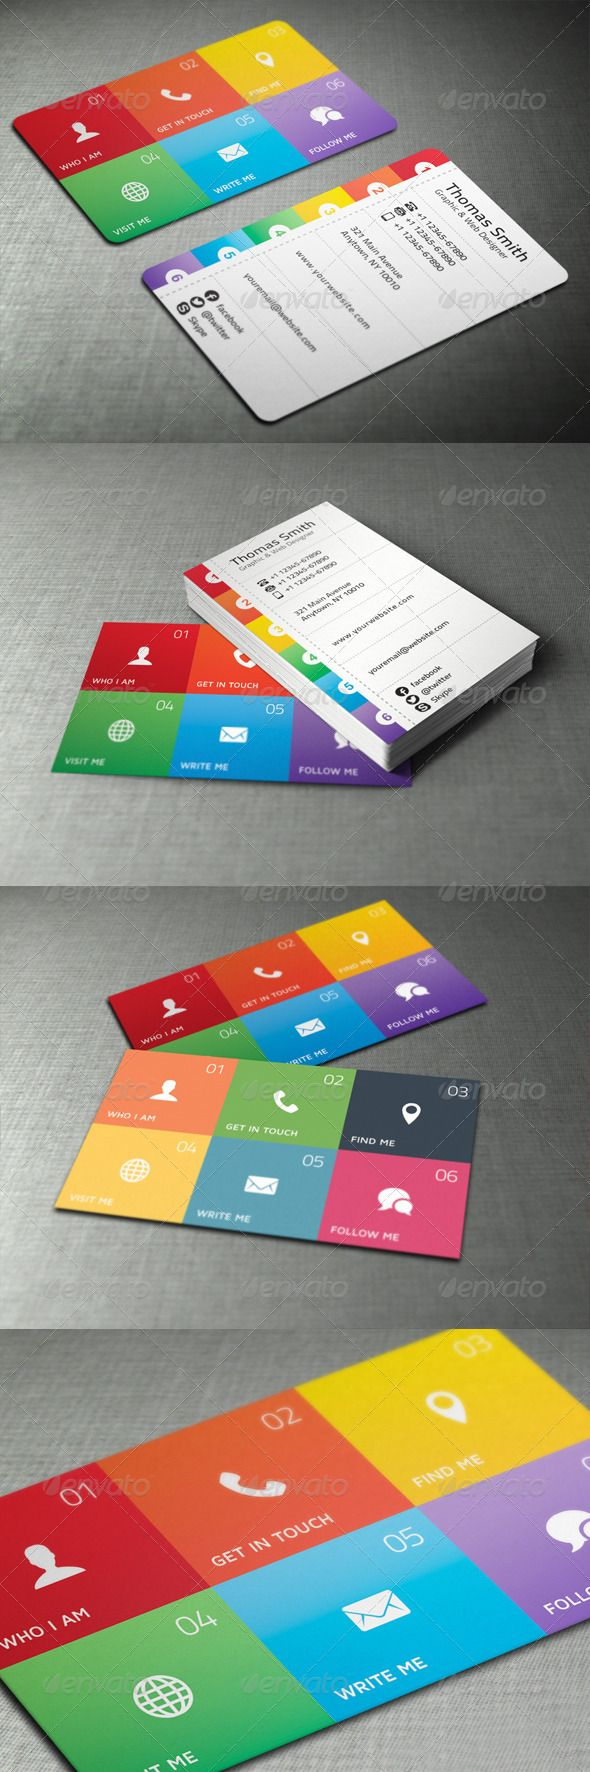 89 best creative business cards images on pinterest carte de 76 fresh creative business card designs for inspiration colourmoves